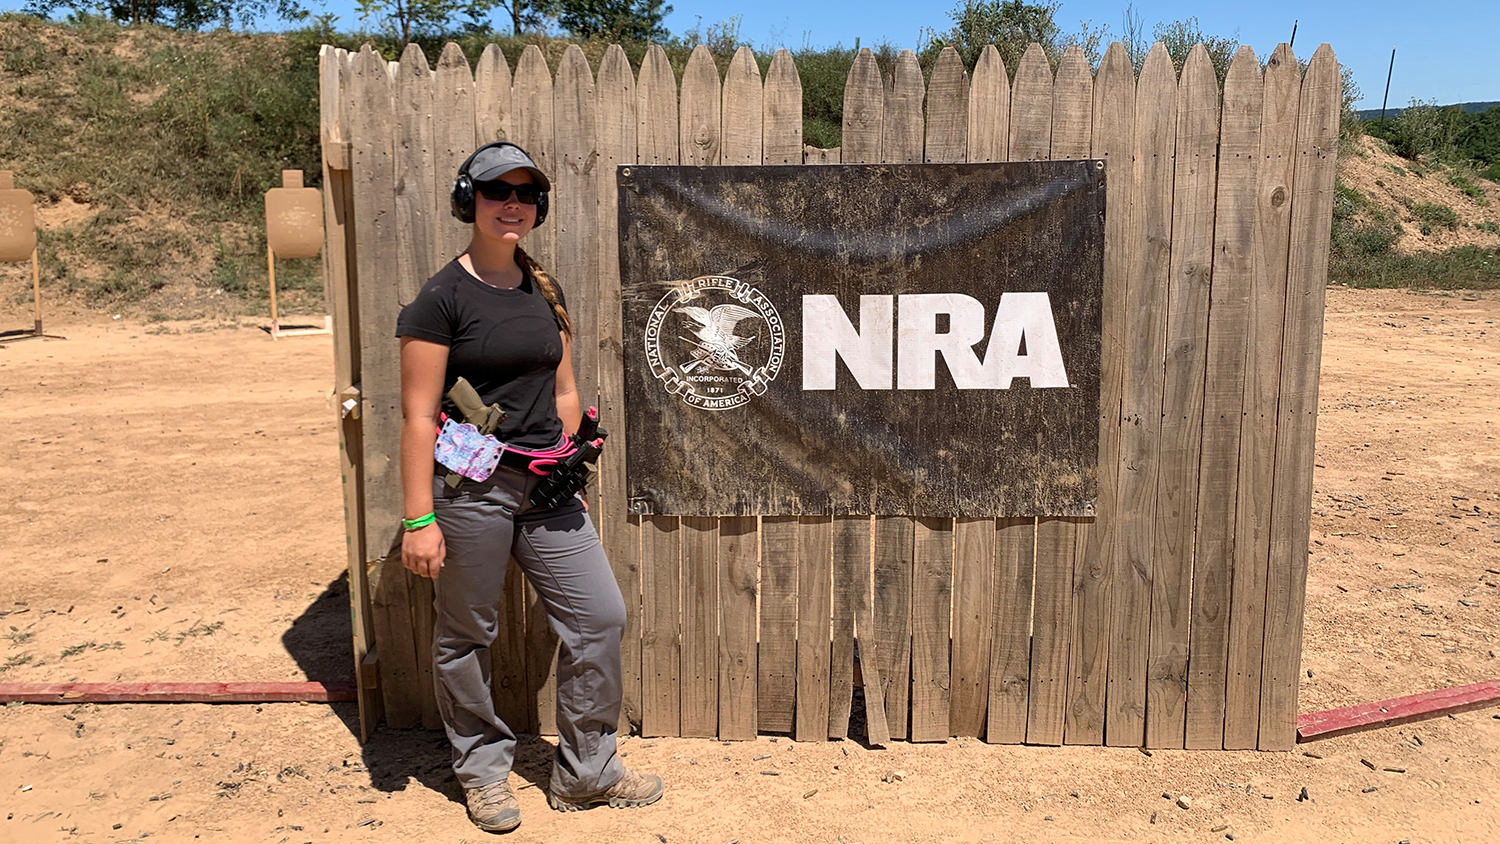 Y.E.S. Alum Follows Competitive Shooting Passion